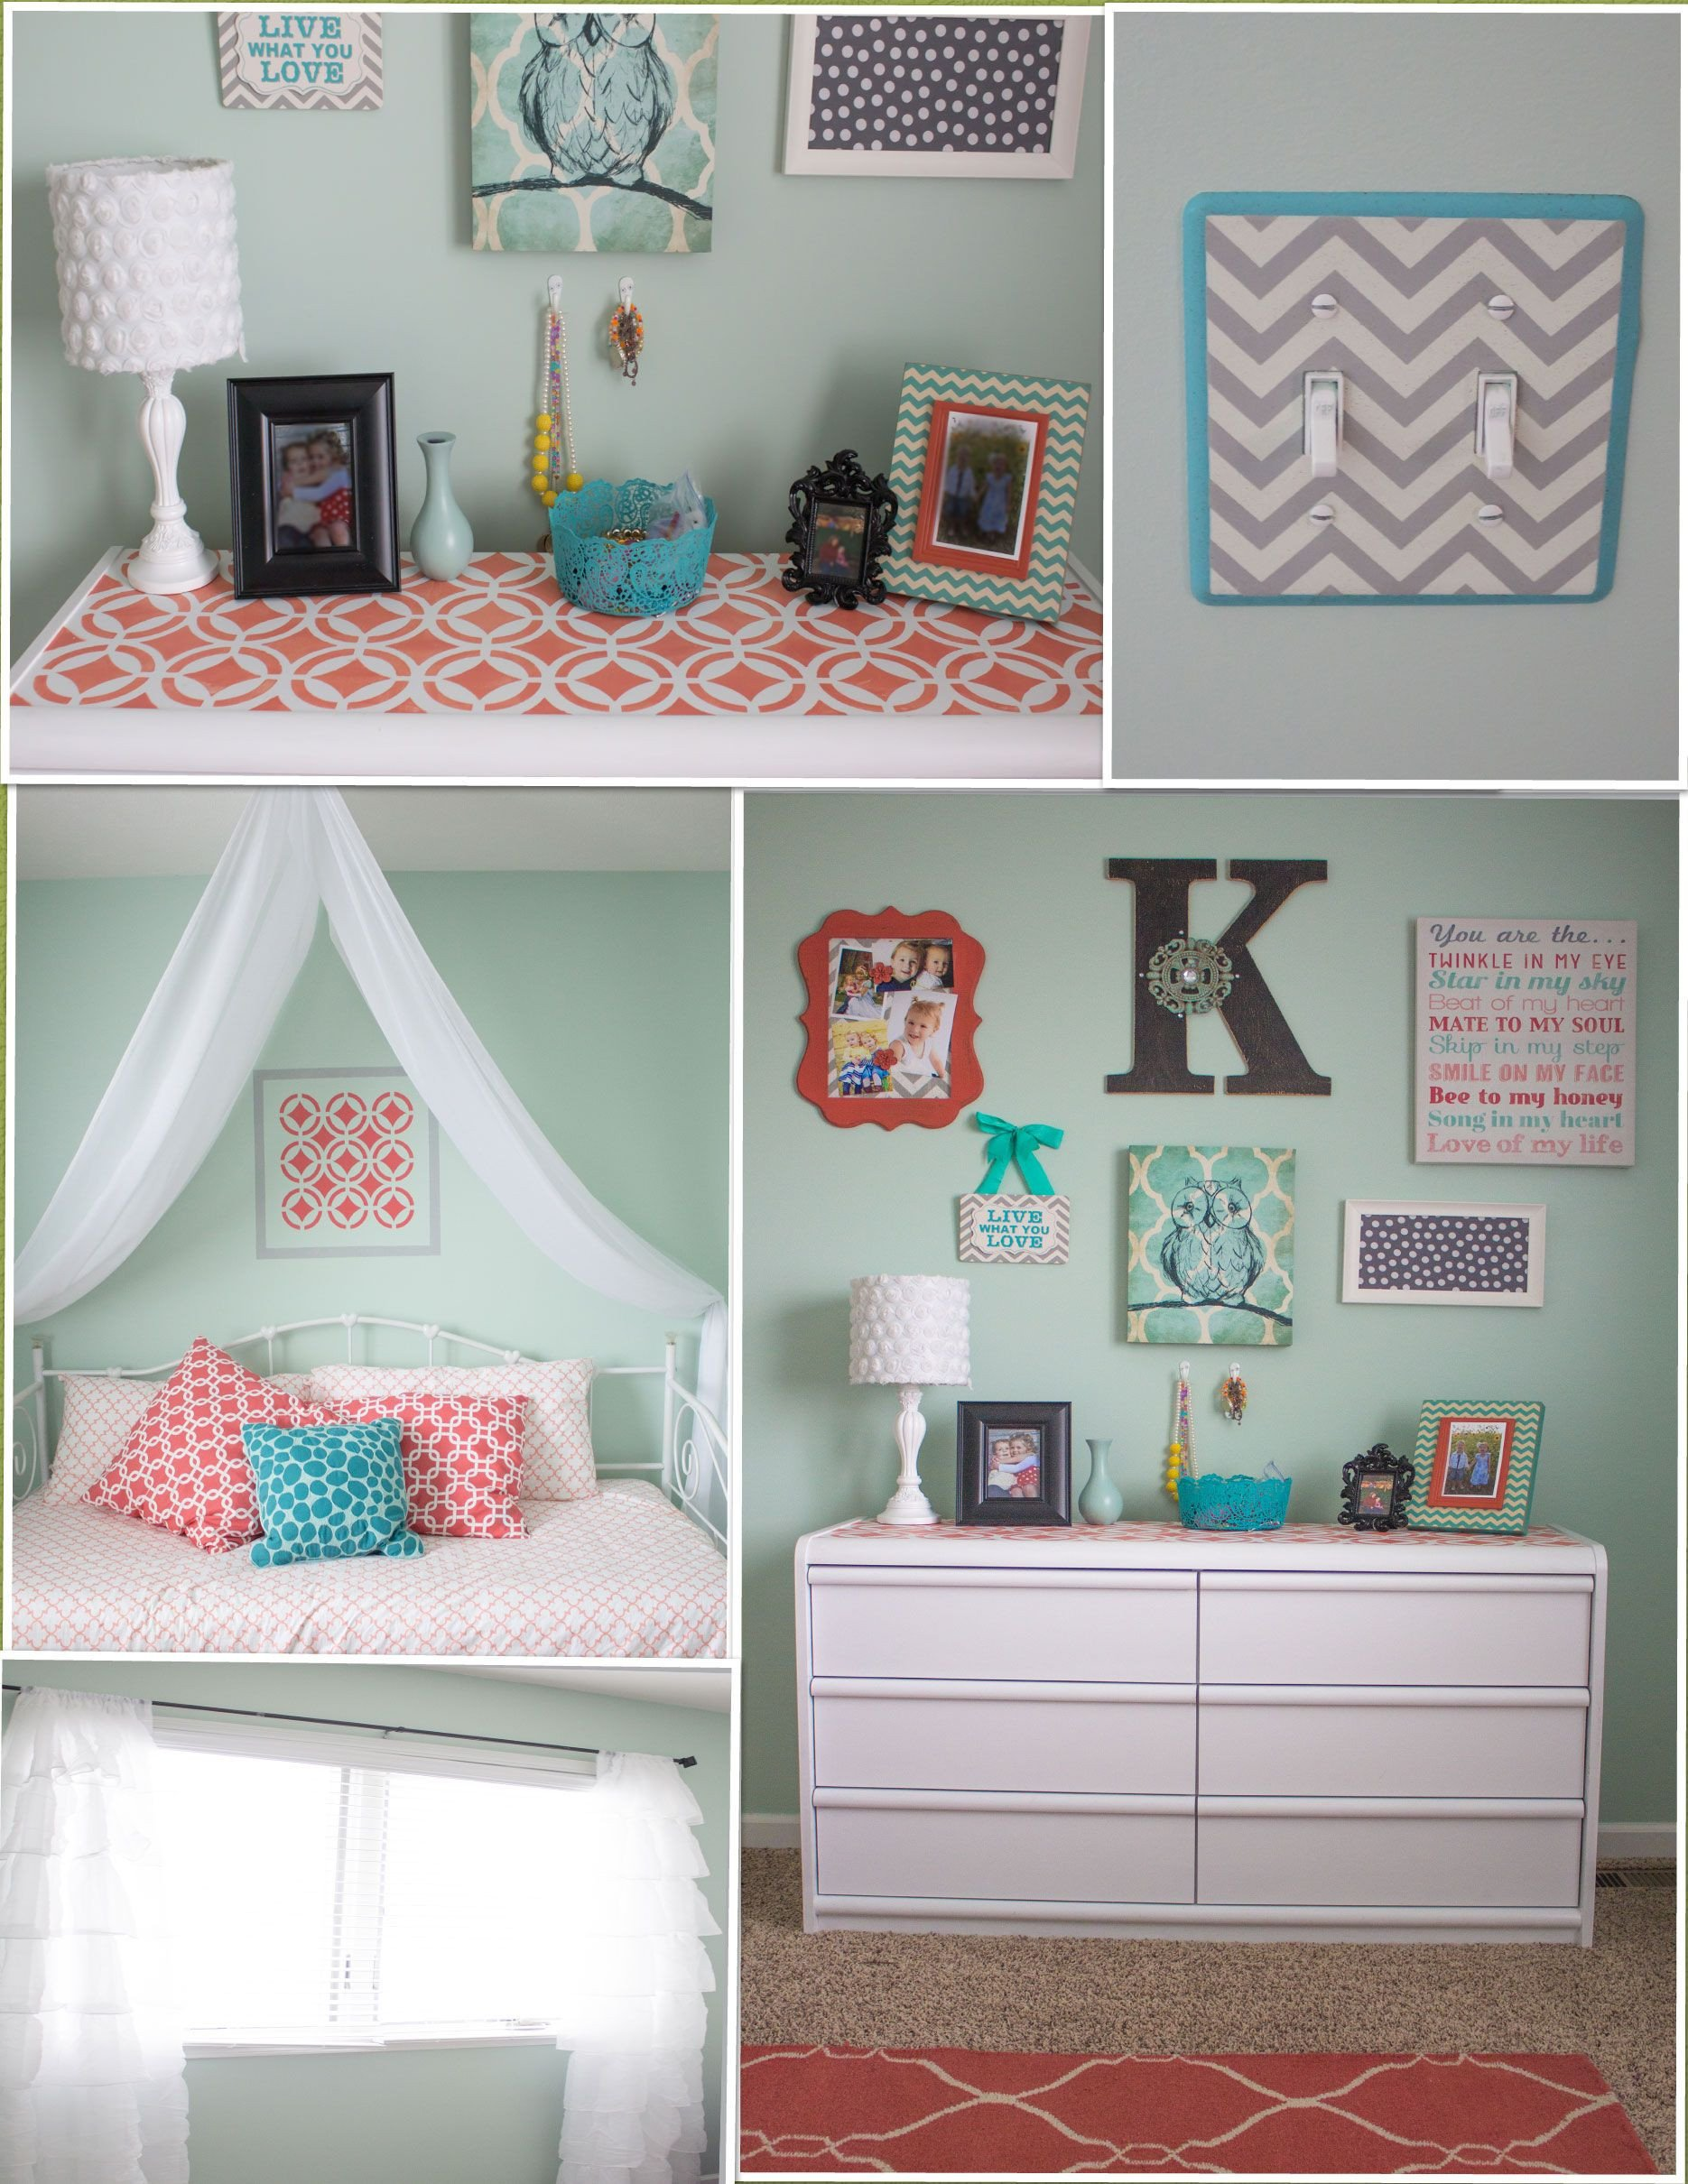 Grey and Turquoise Bedroom Ideas Lovely My New Favorite Room In the House Love My Mint and Coral